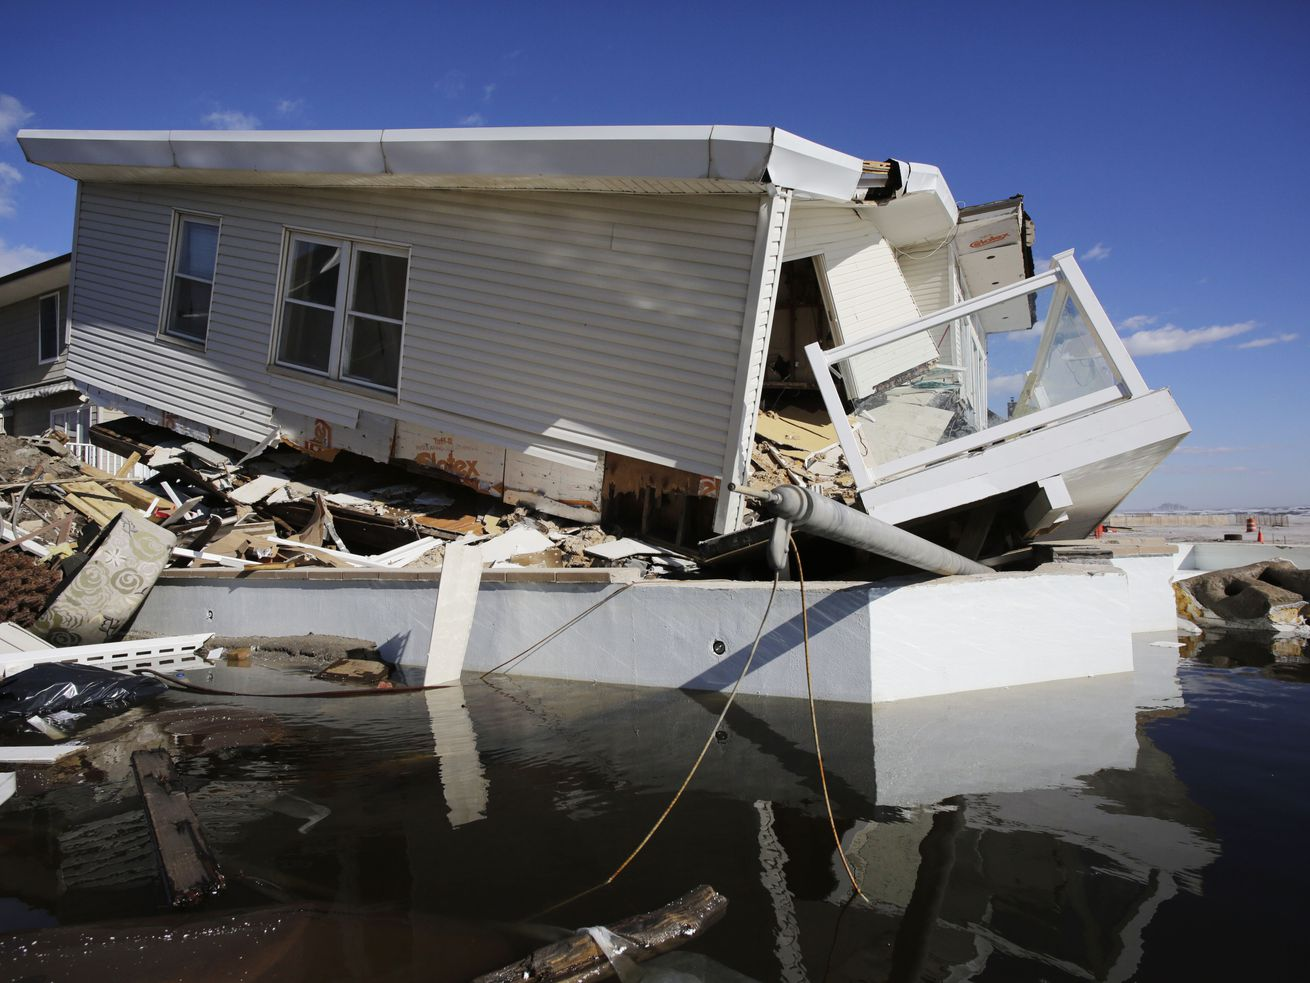 In this Thursday, Jan. 31, 2013 file photo, a storm-damaged beachfront house is reflected in a pool of water in the Far Rockaways, in the Queens borough of New York. A study released in the journal Nature Communications on Tuesday, May 18, 2021, says climate change added $8 billion to the massive costs of 2012's Superstorm Sandy.